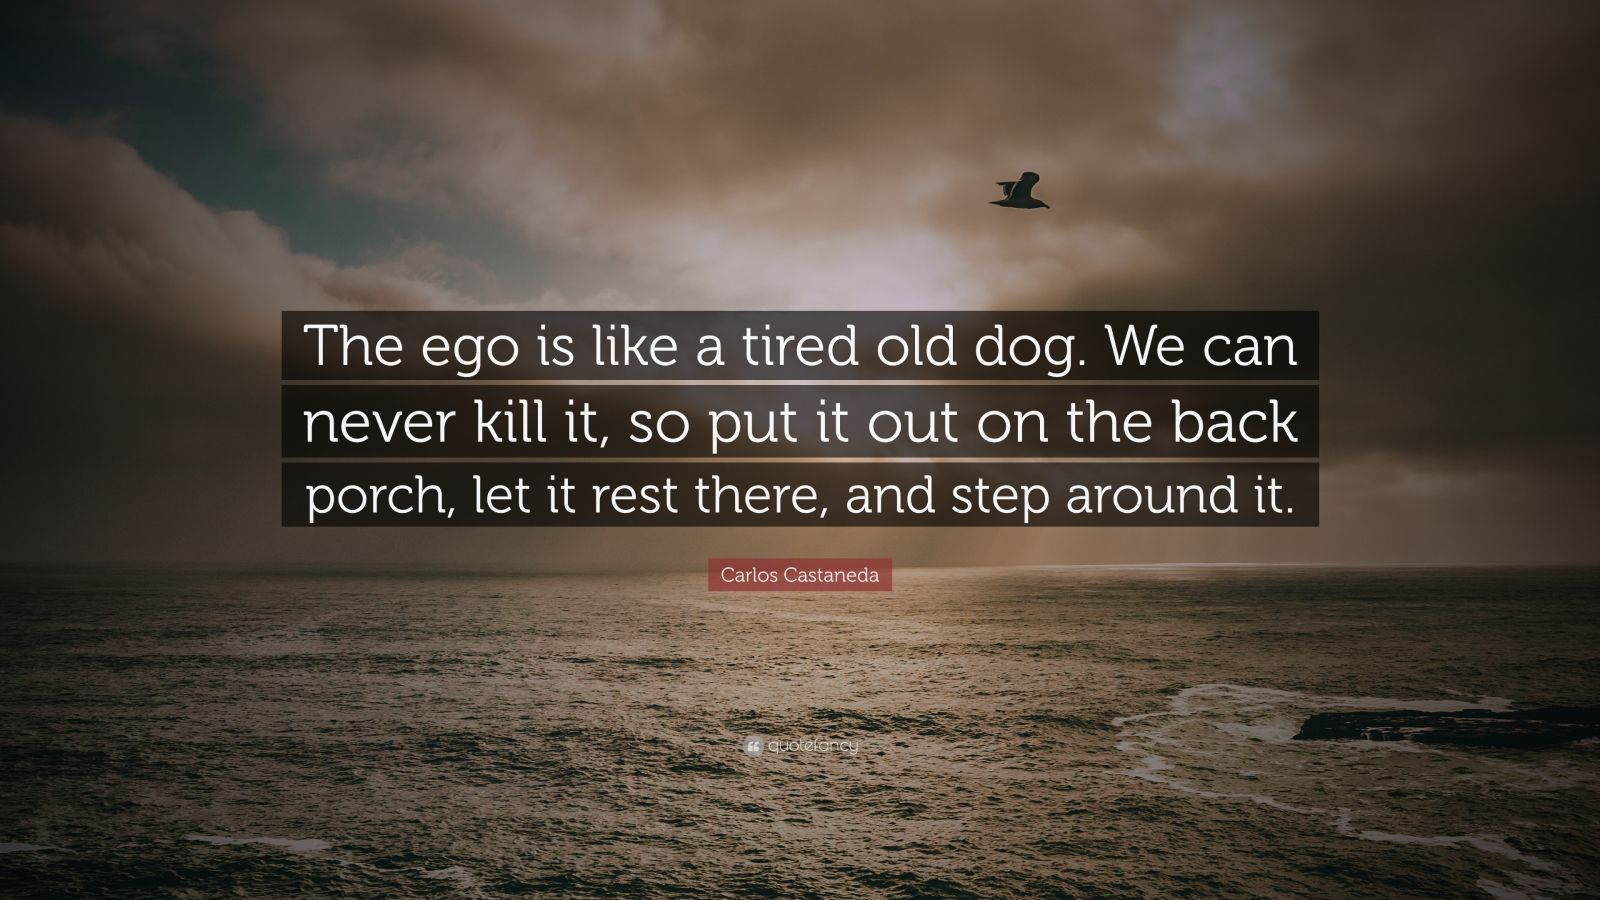 Holographic Wallpaper With Quotes Carlos Castaneda Quote The Ego Is Like A Tired Old Dog